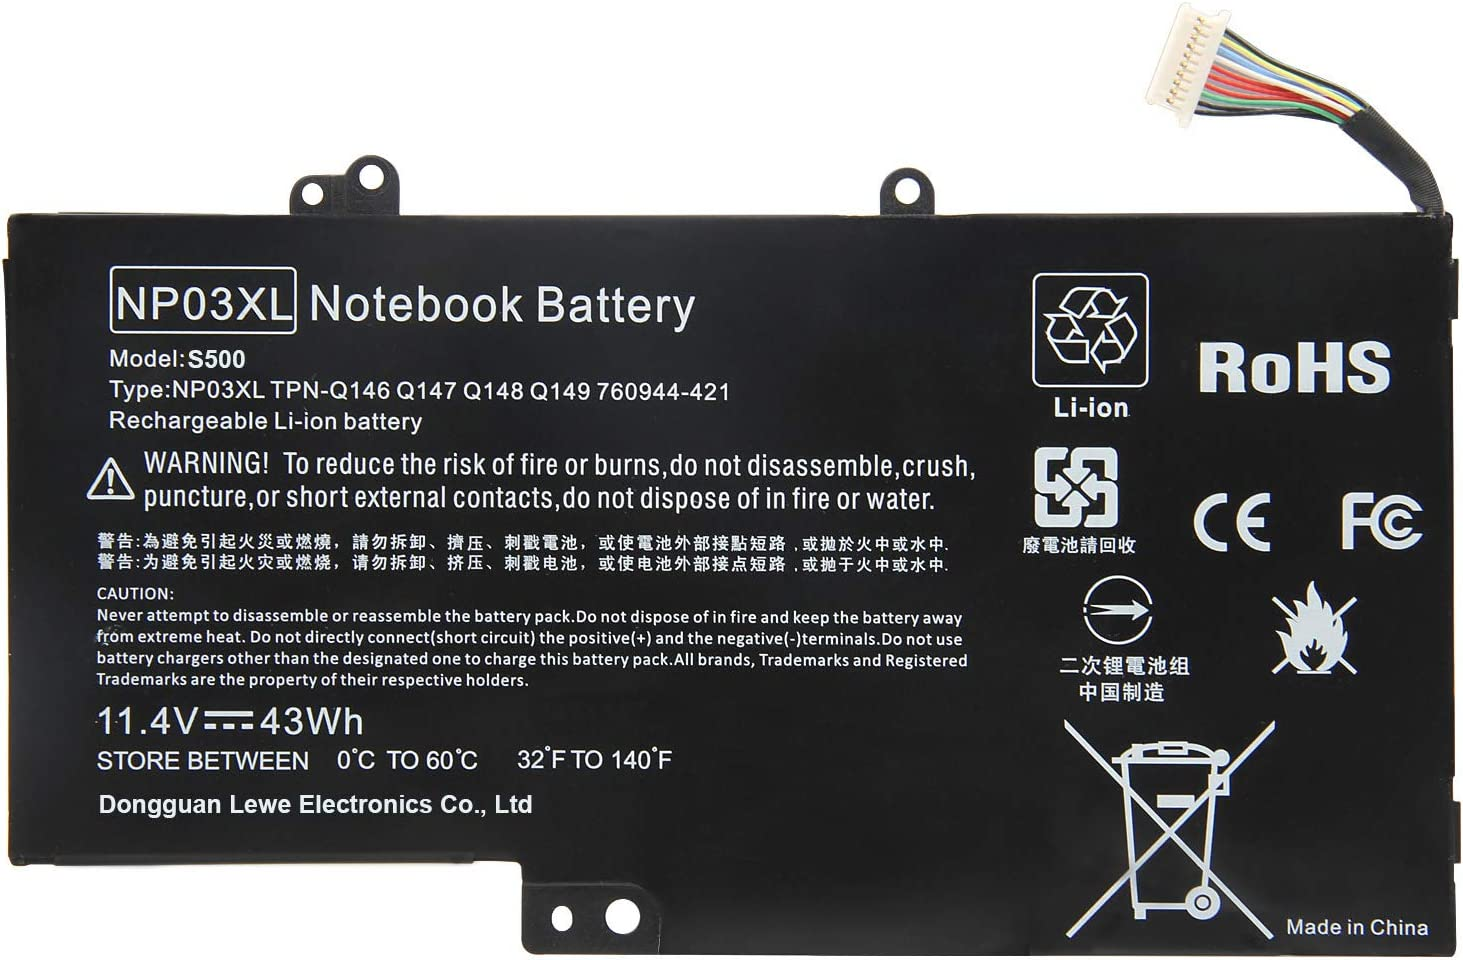 ARyee 43Wh 11.4V NP03XL Battery Laptop Battery Replacement for HP Pavilion X360 13-A010DX 13-b116t HP Envy 15-U010DX 15-U337CL 15-U050CA; fit for 760944-421 761230-005 HSTNN-LB6L TPN-Q146 TPN-Q147 TPN